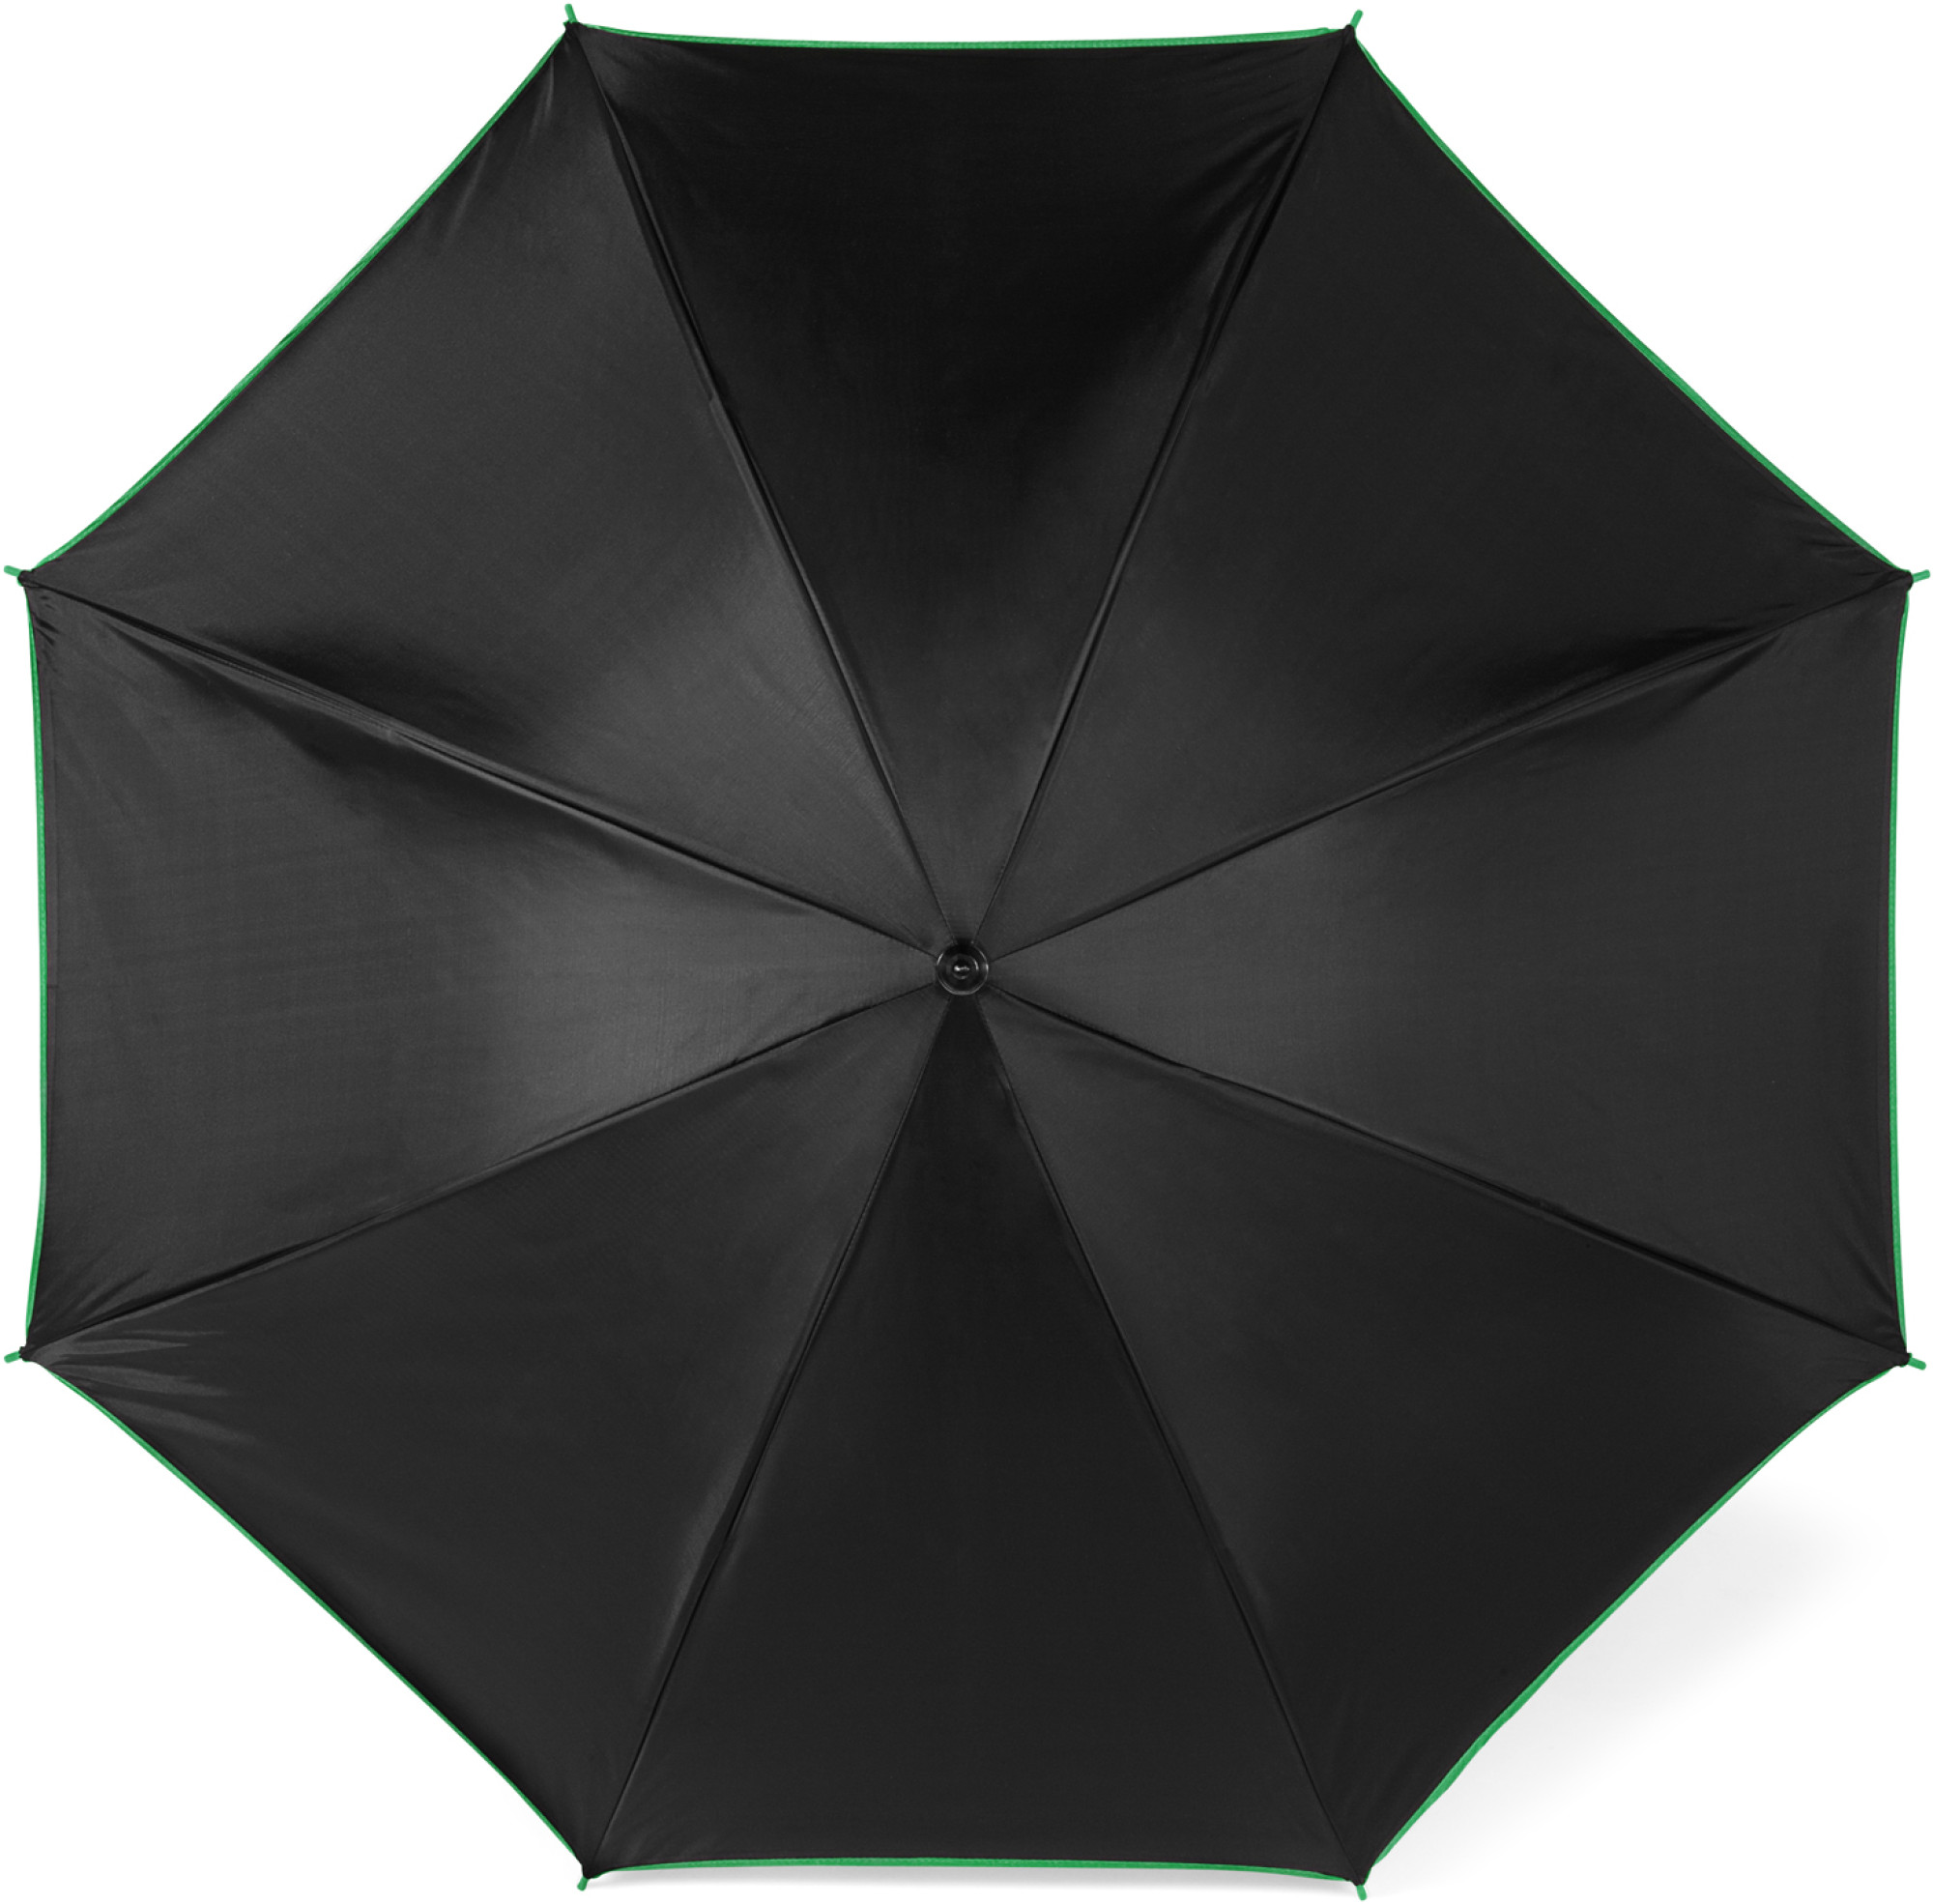 Branded Umbrella with automatic opening.